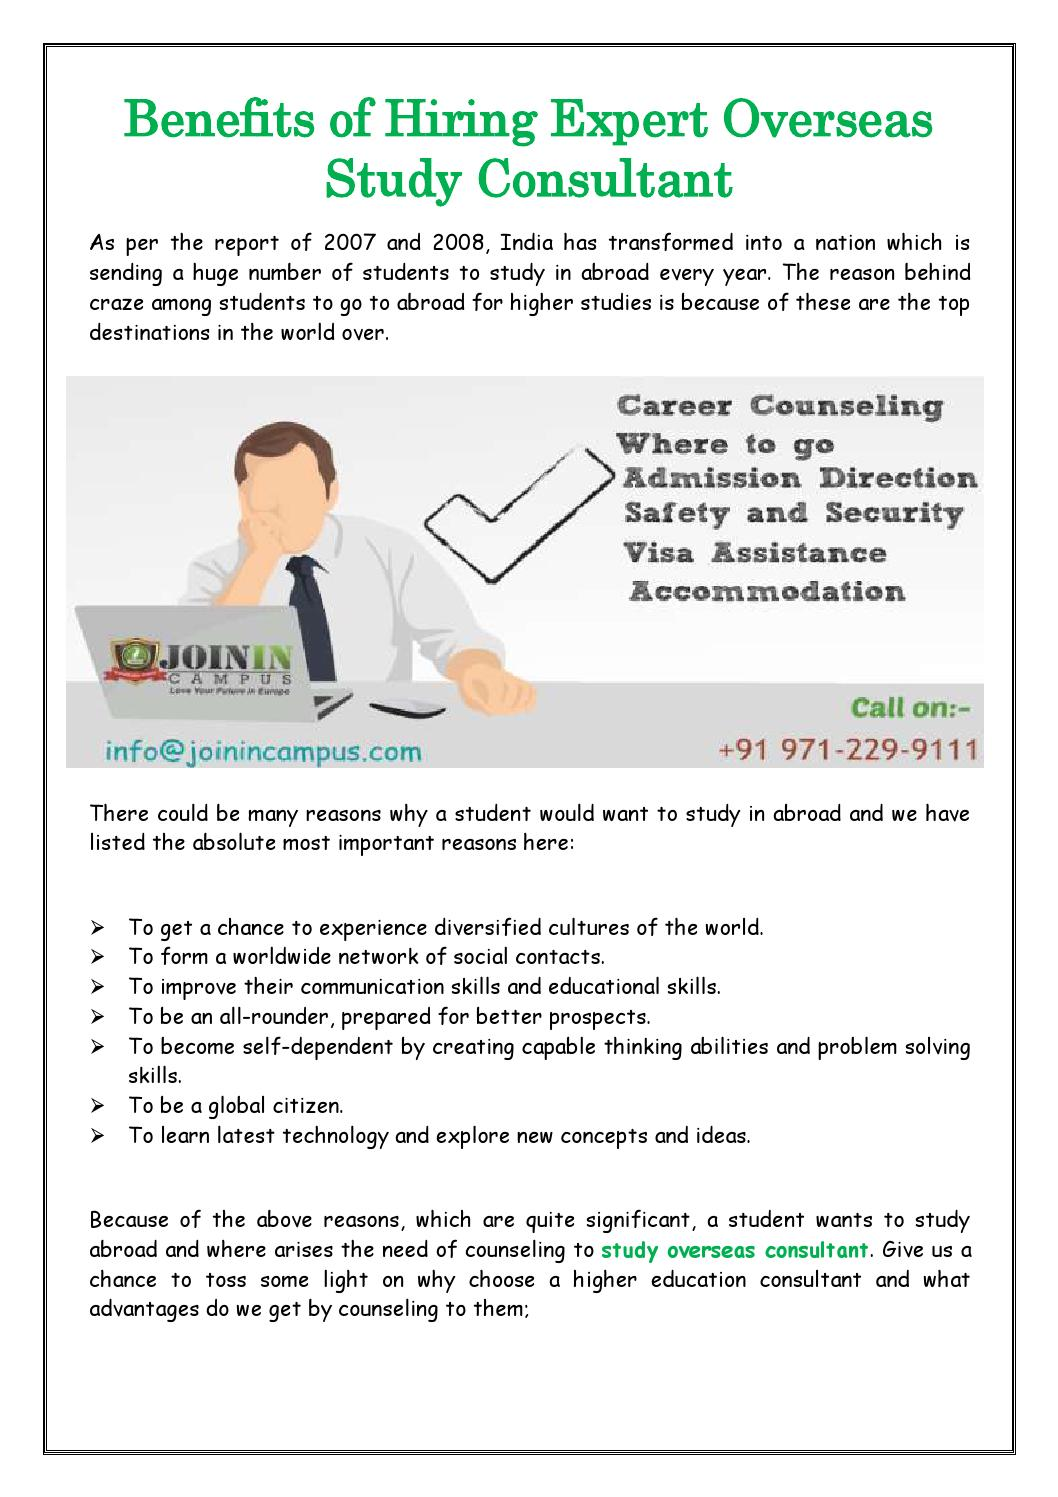 Benefits Of Hiring Expert Overseas Study Consultant By Join In